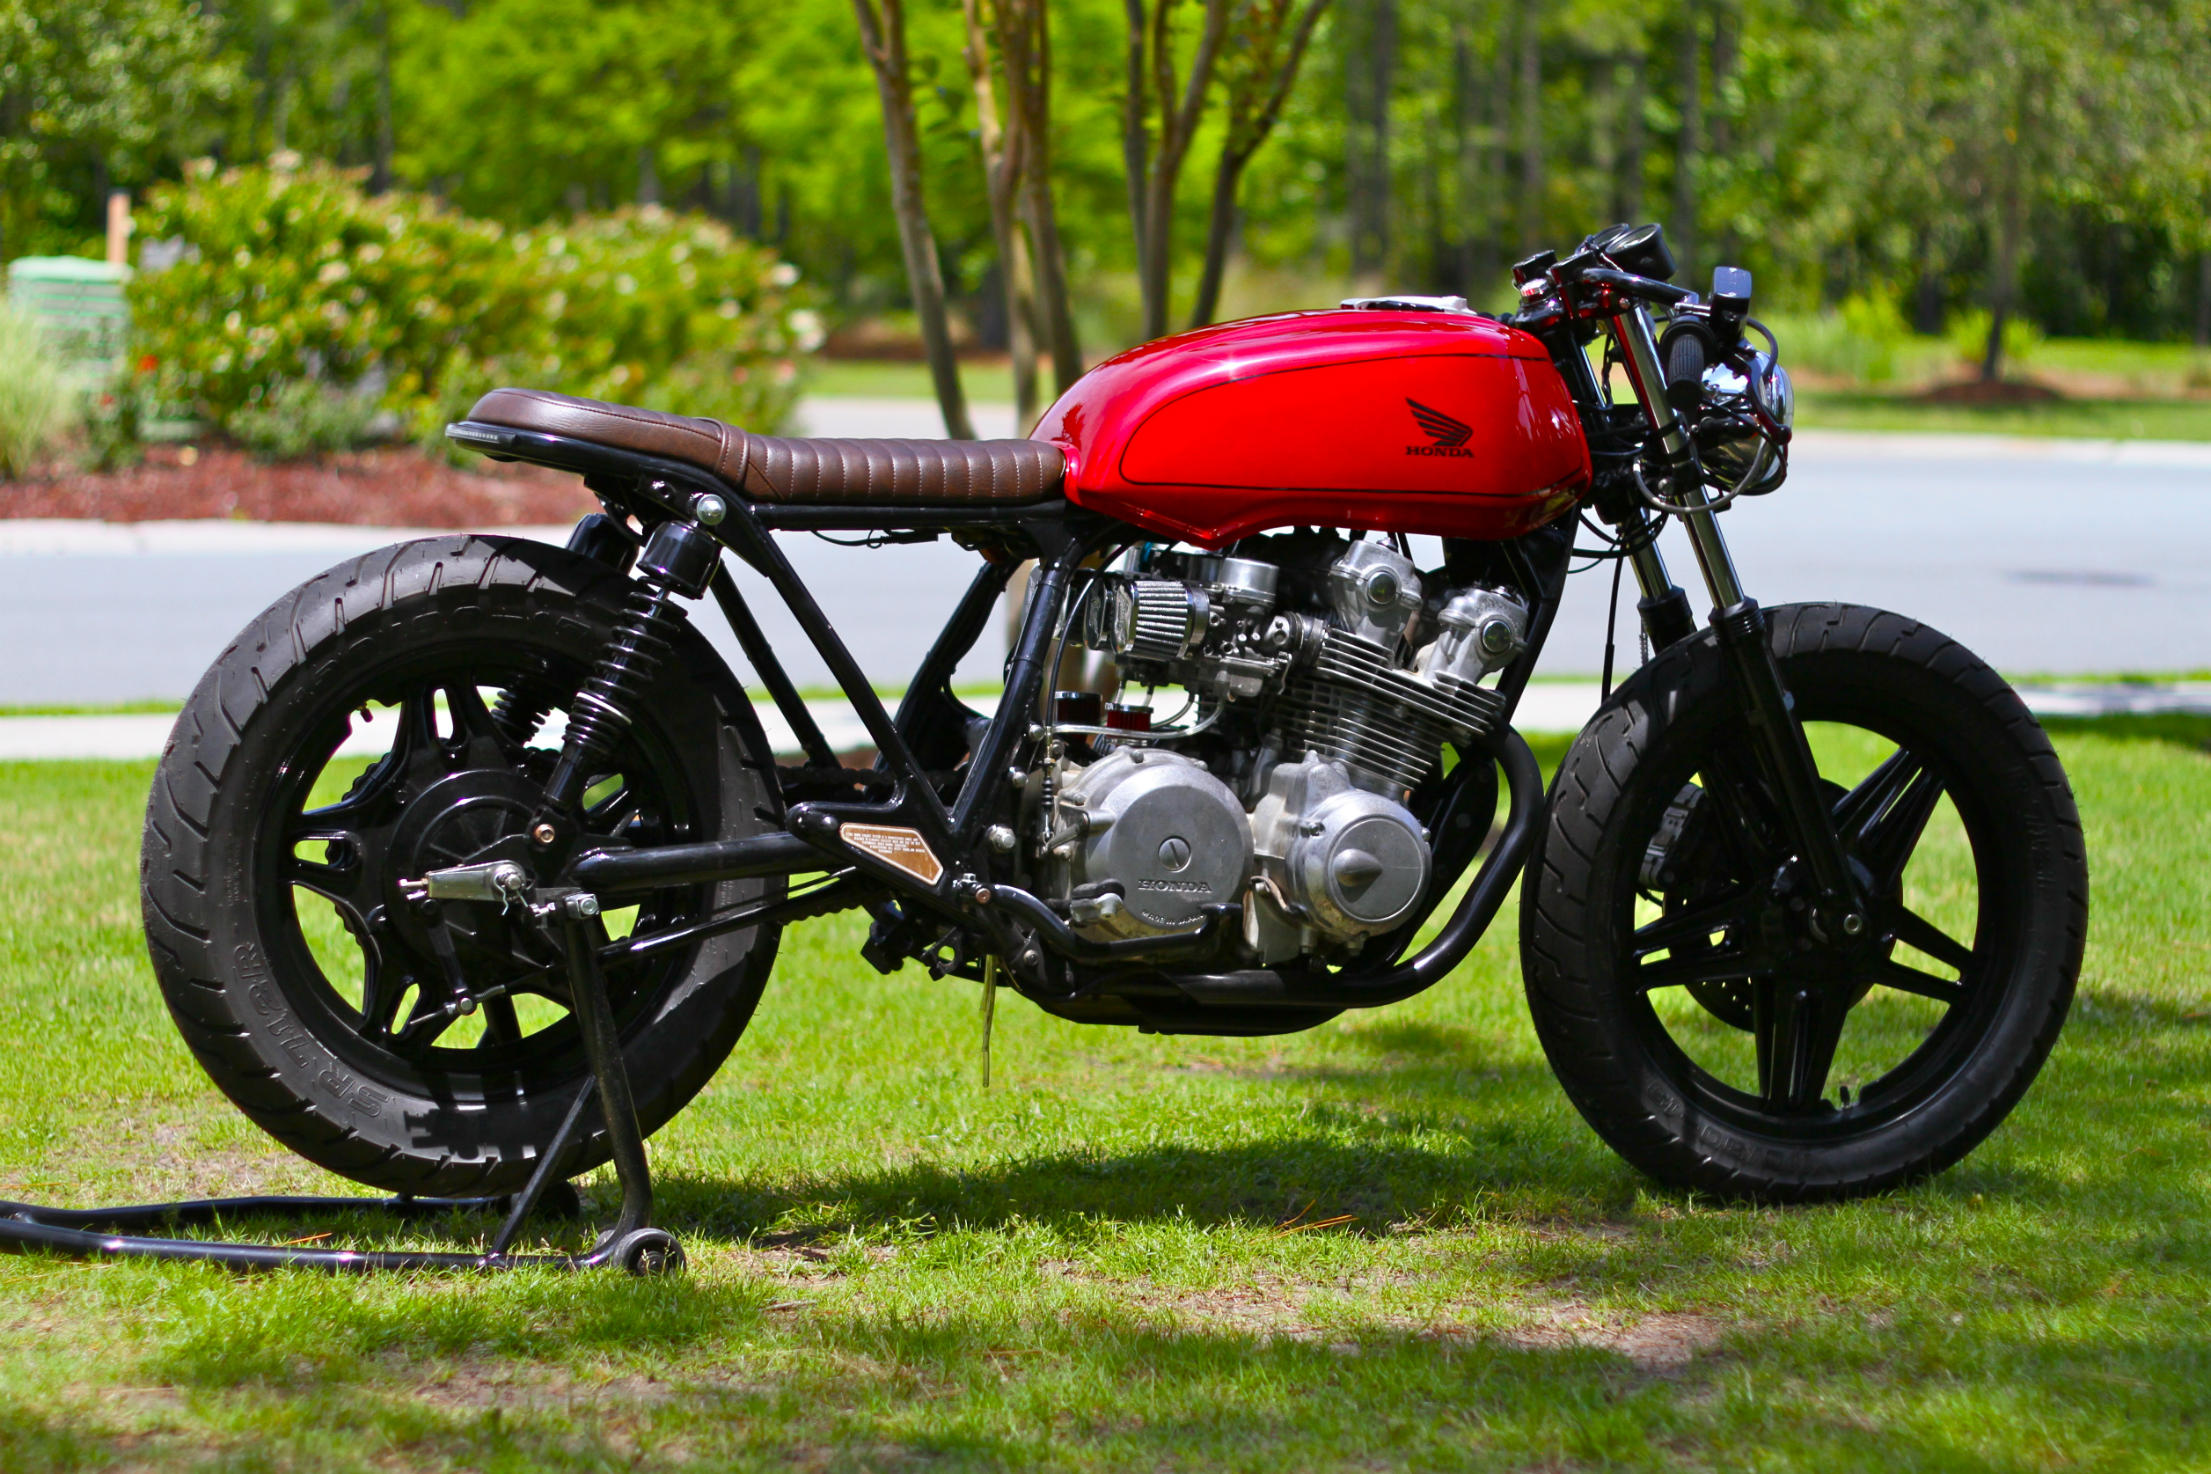 Honda CB750 - Starting at $8.500